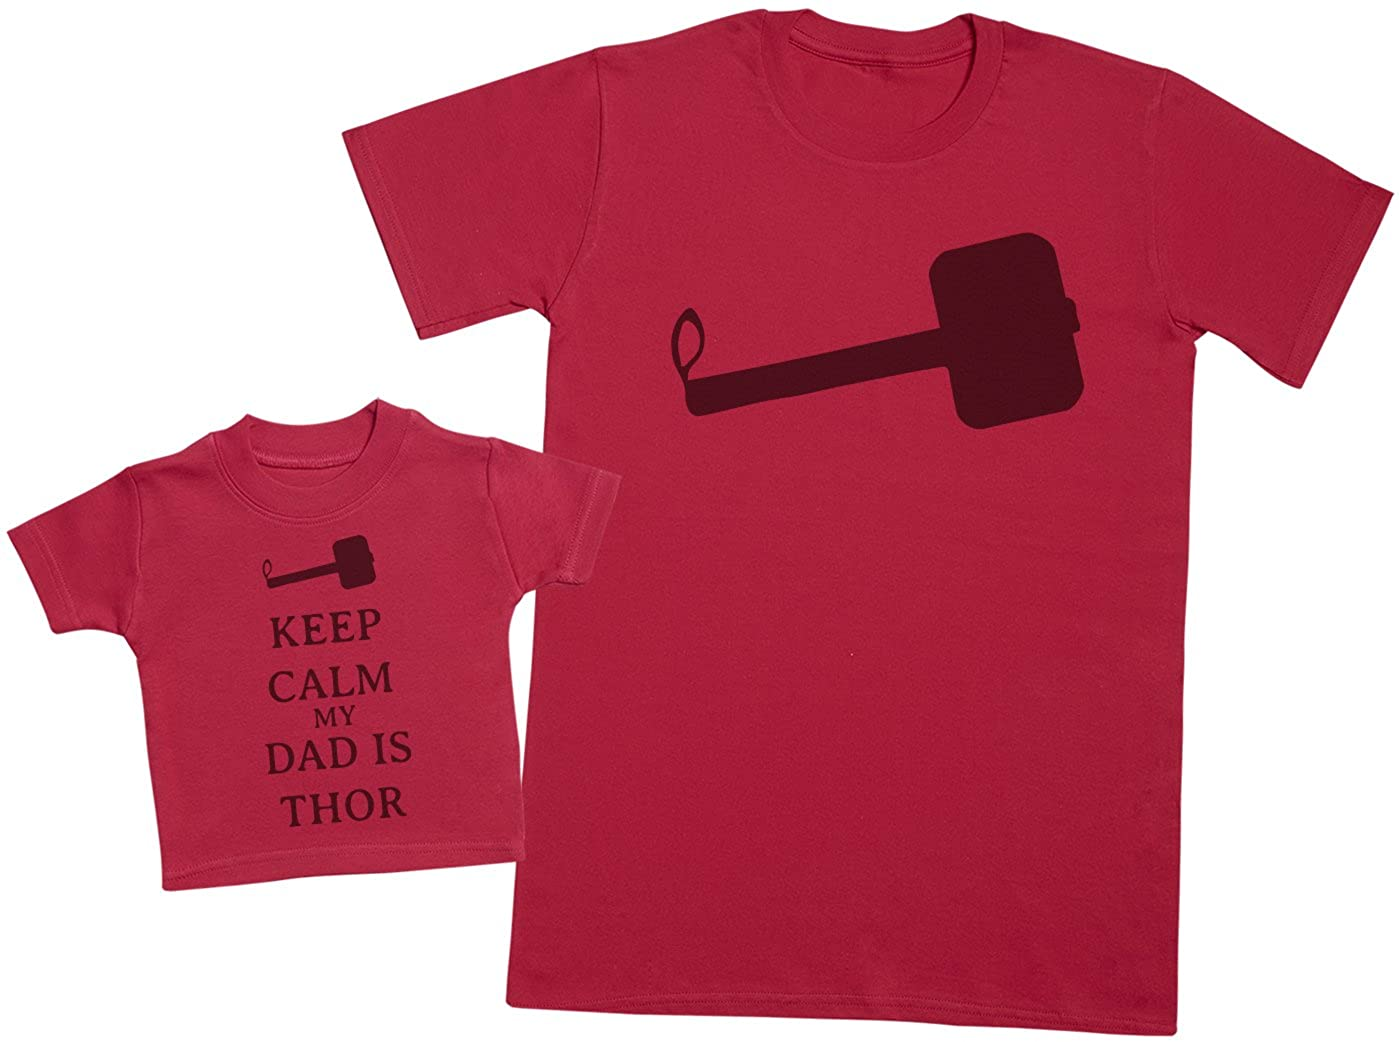 Mens T Shirt /& Baby T-Shirt XX-Large /& 0-3 Months Matching Father Baby Gift Set Red Keep Calm My Dad is Thor